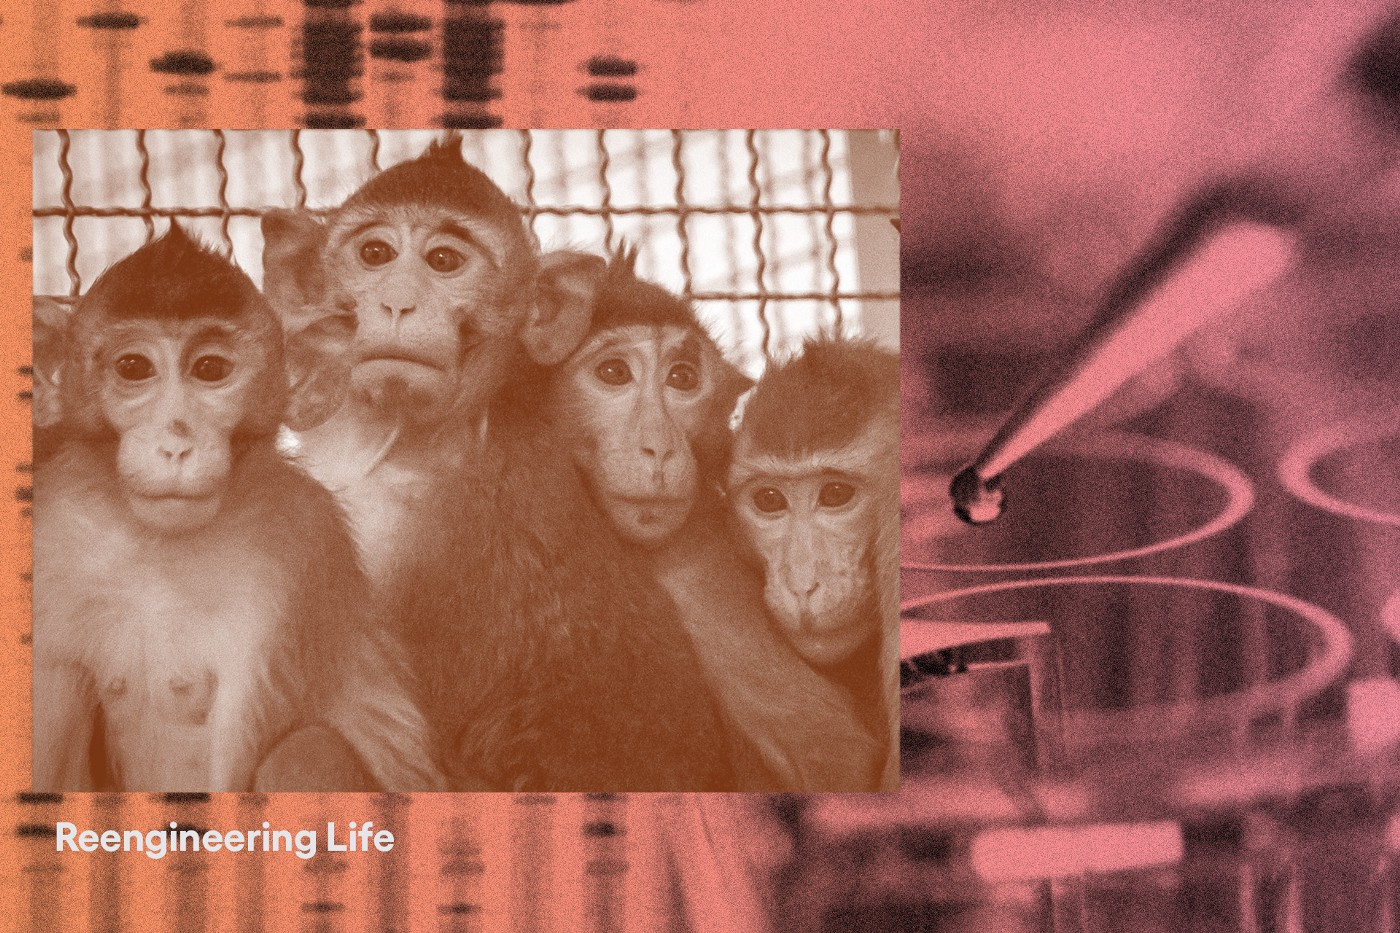 A collage of photos: macaque monkeys, a dropper, and a nucliec acid stain